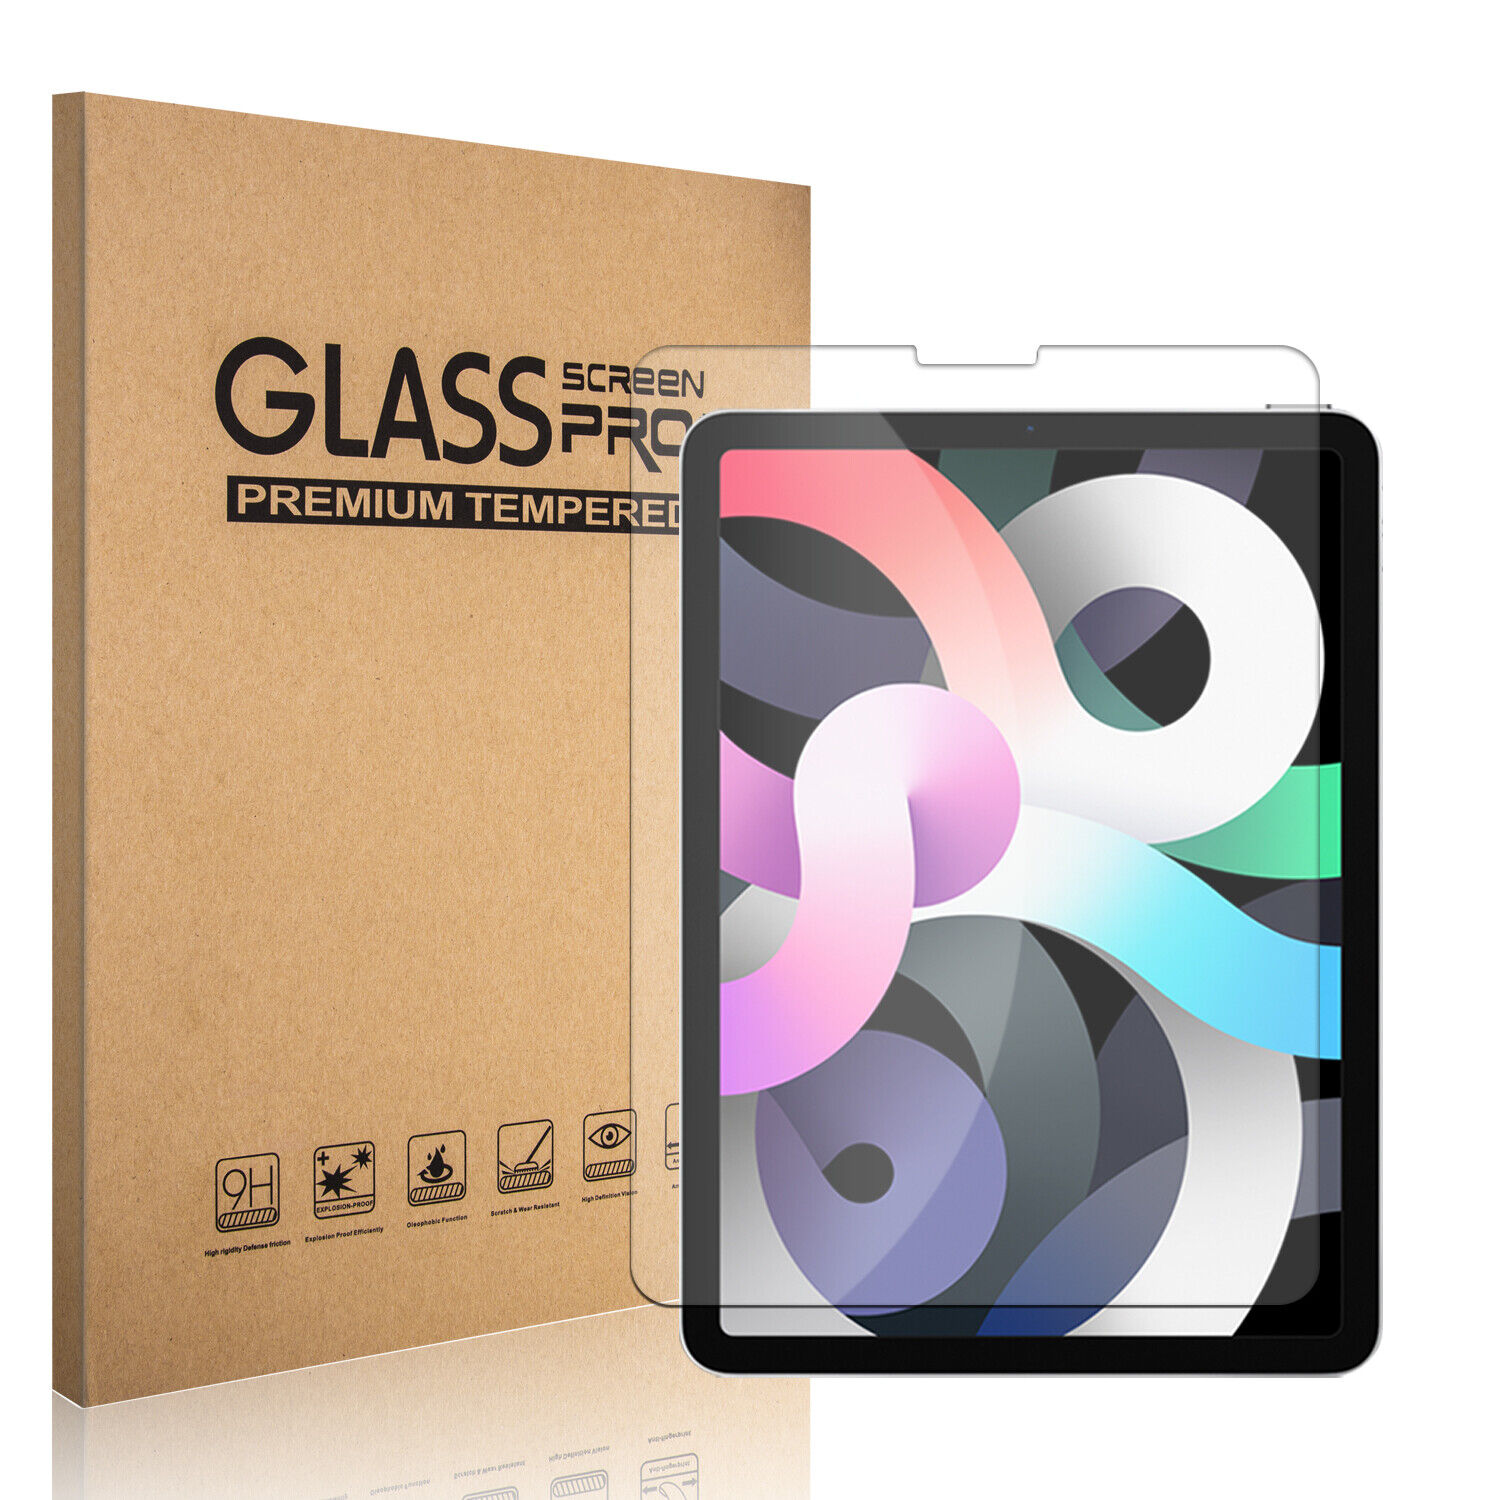 """For iPad Air (2020) 10.9"""",4th Generation Case With Stand Cover,Screen Protector Cases, Covers, Keyboard Folios"""